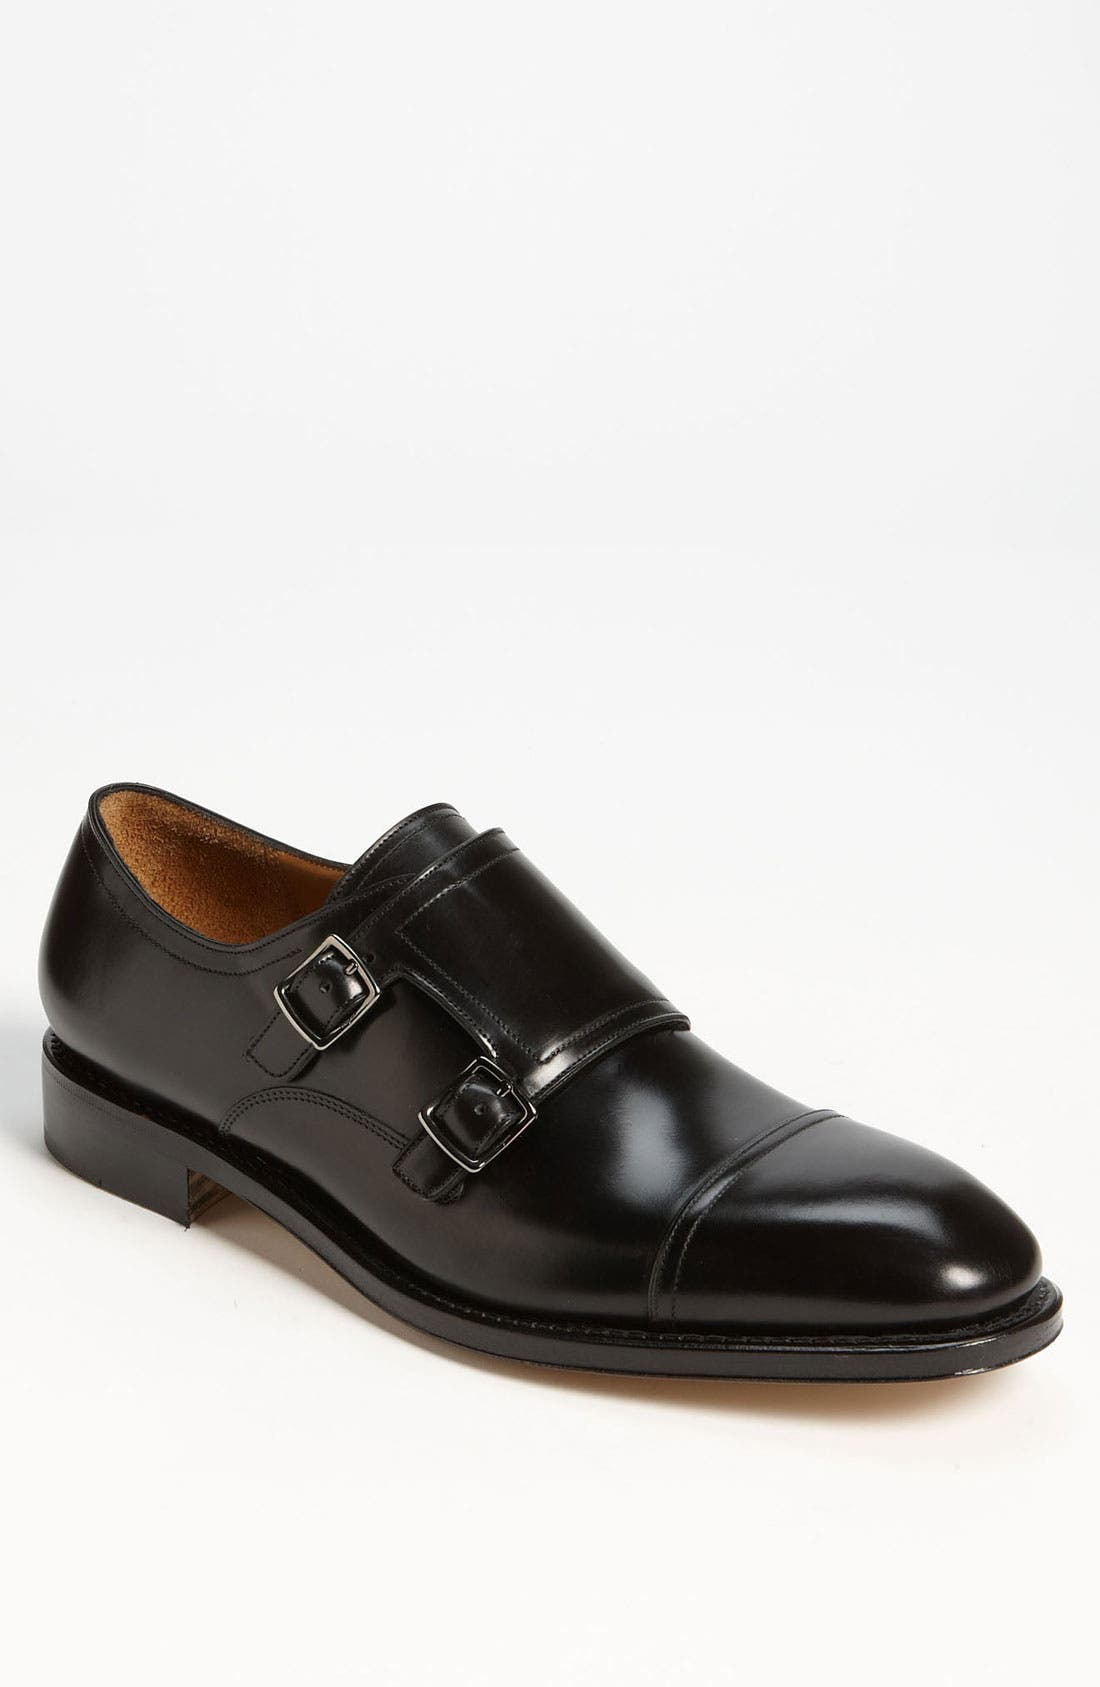 Main Image - Salvatore Ferragamo 'Duran' Double Monk Strap Slip-On